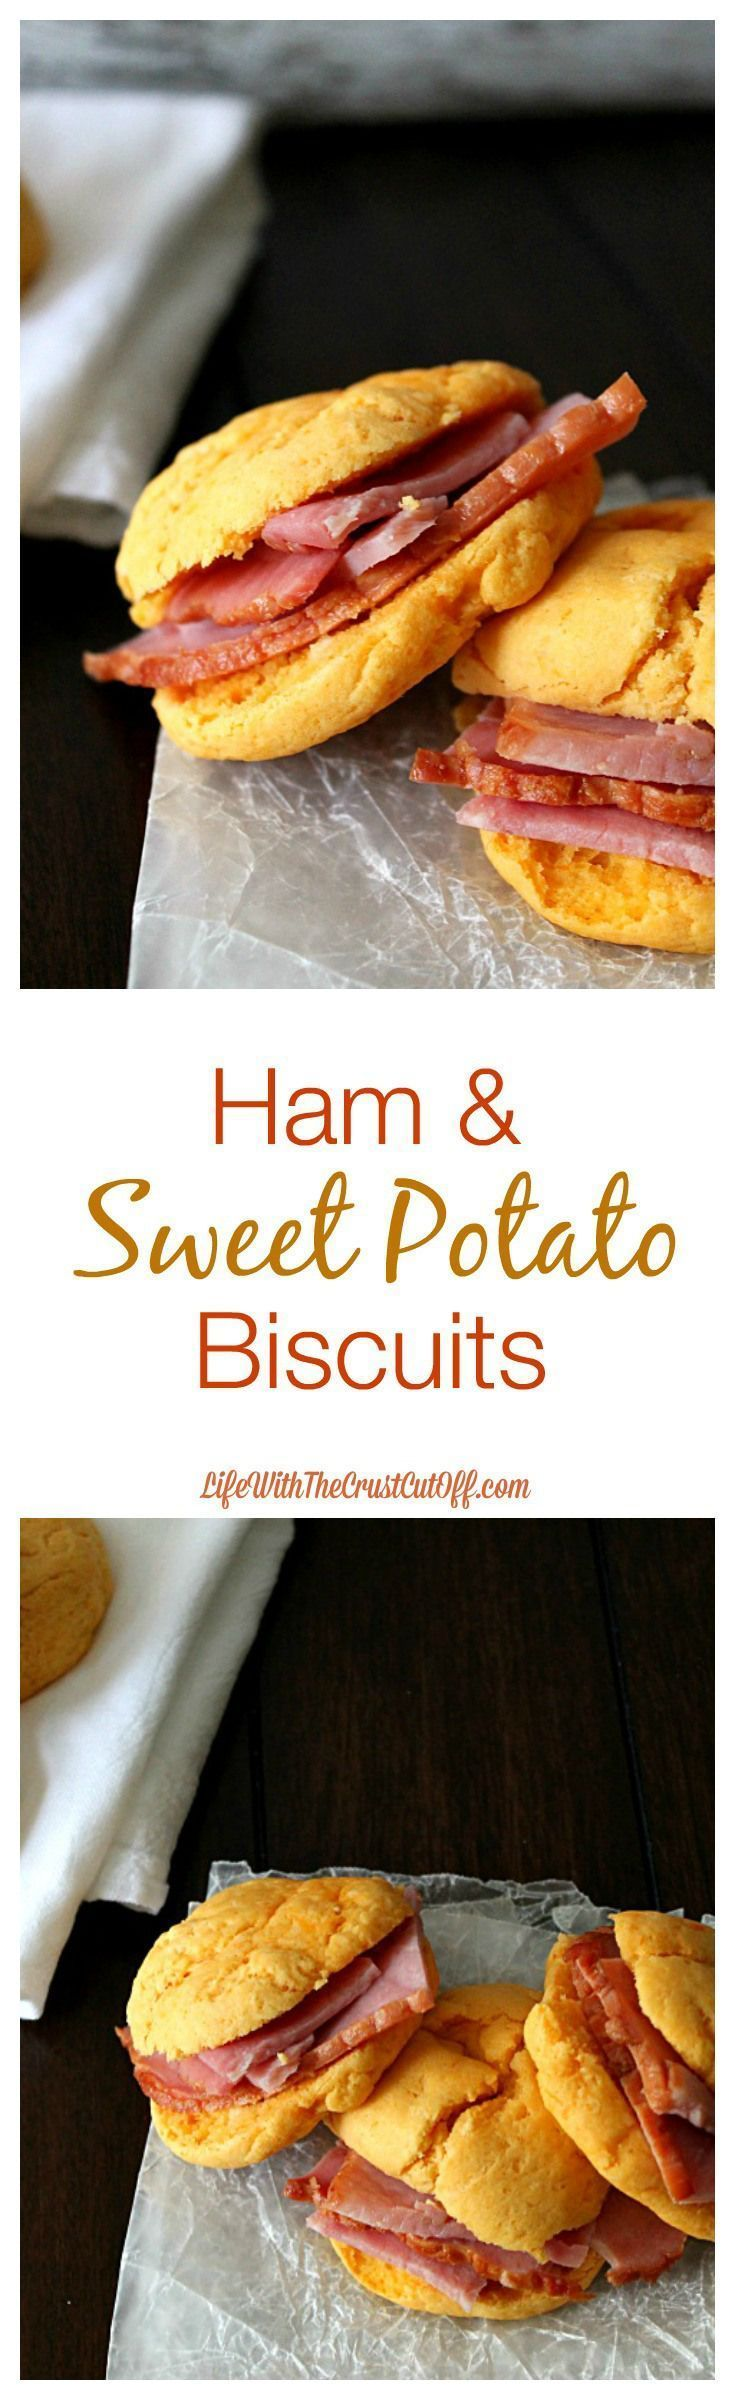 Ham & Sweet Potato Biscuits.   Easy sweet potato biscuits are perfect for that leftover holiday ham!